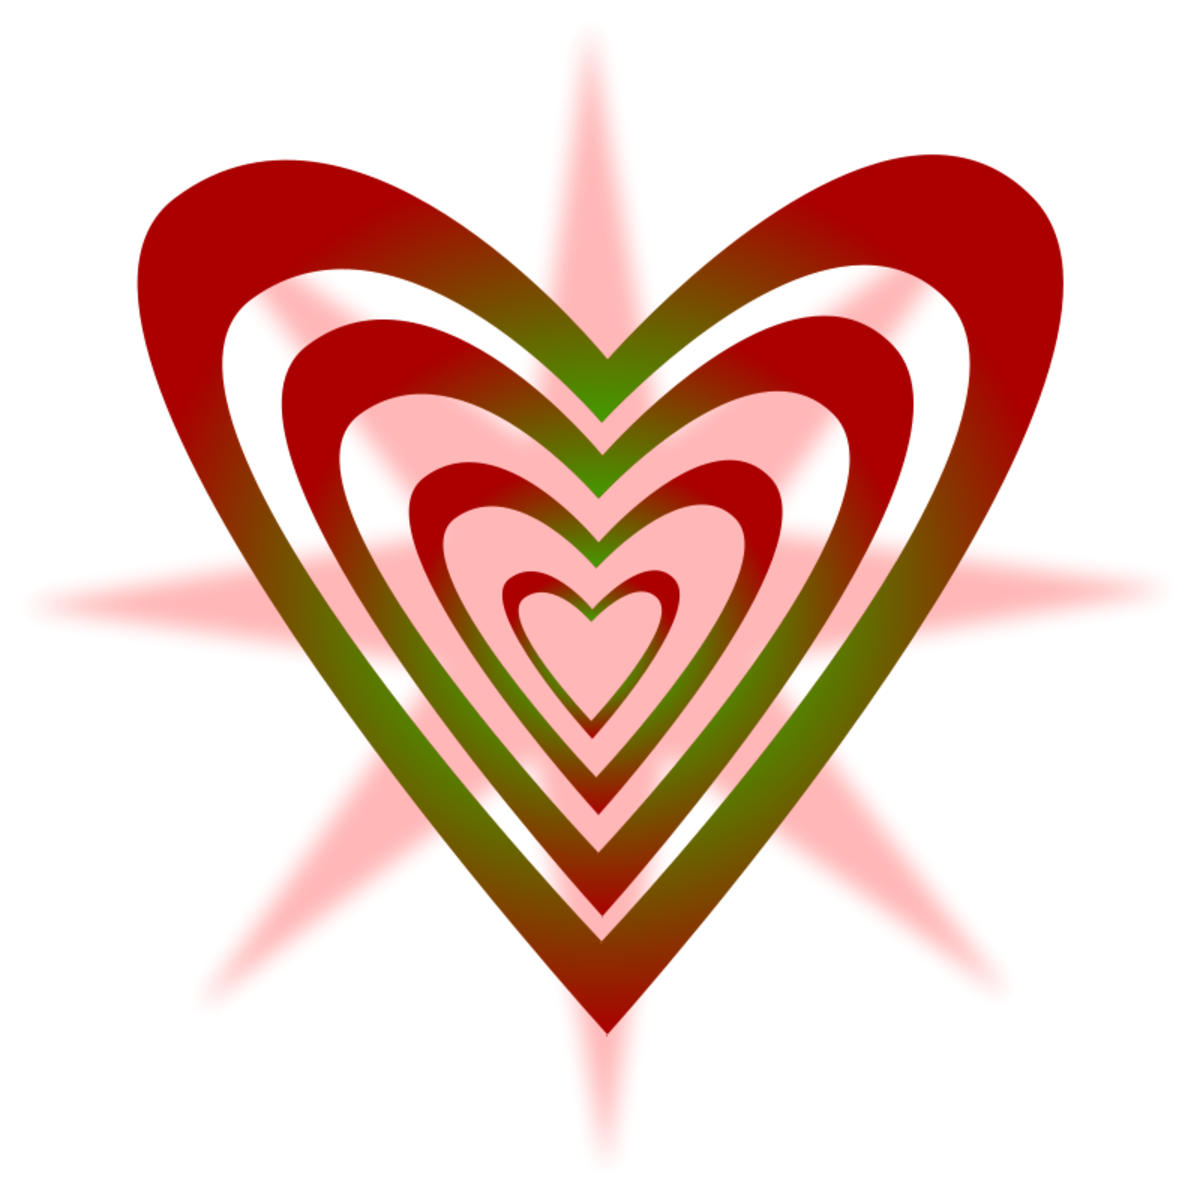 Picture of Red and Green Hearts